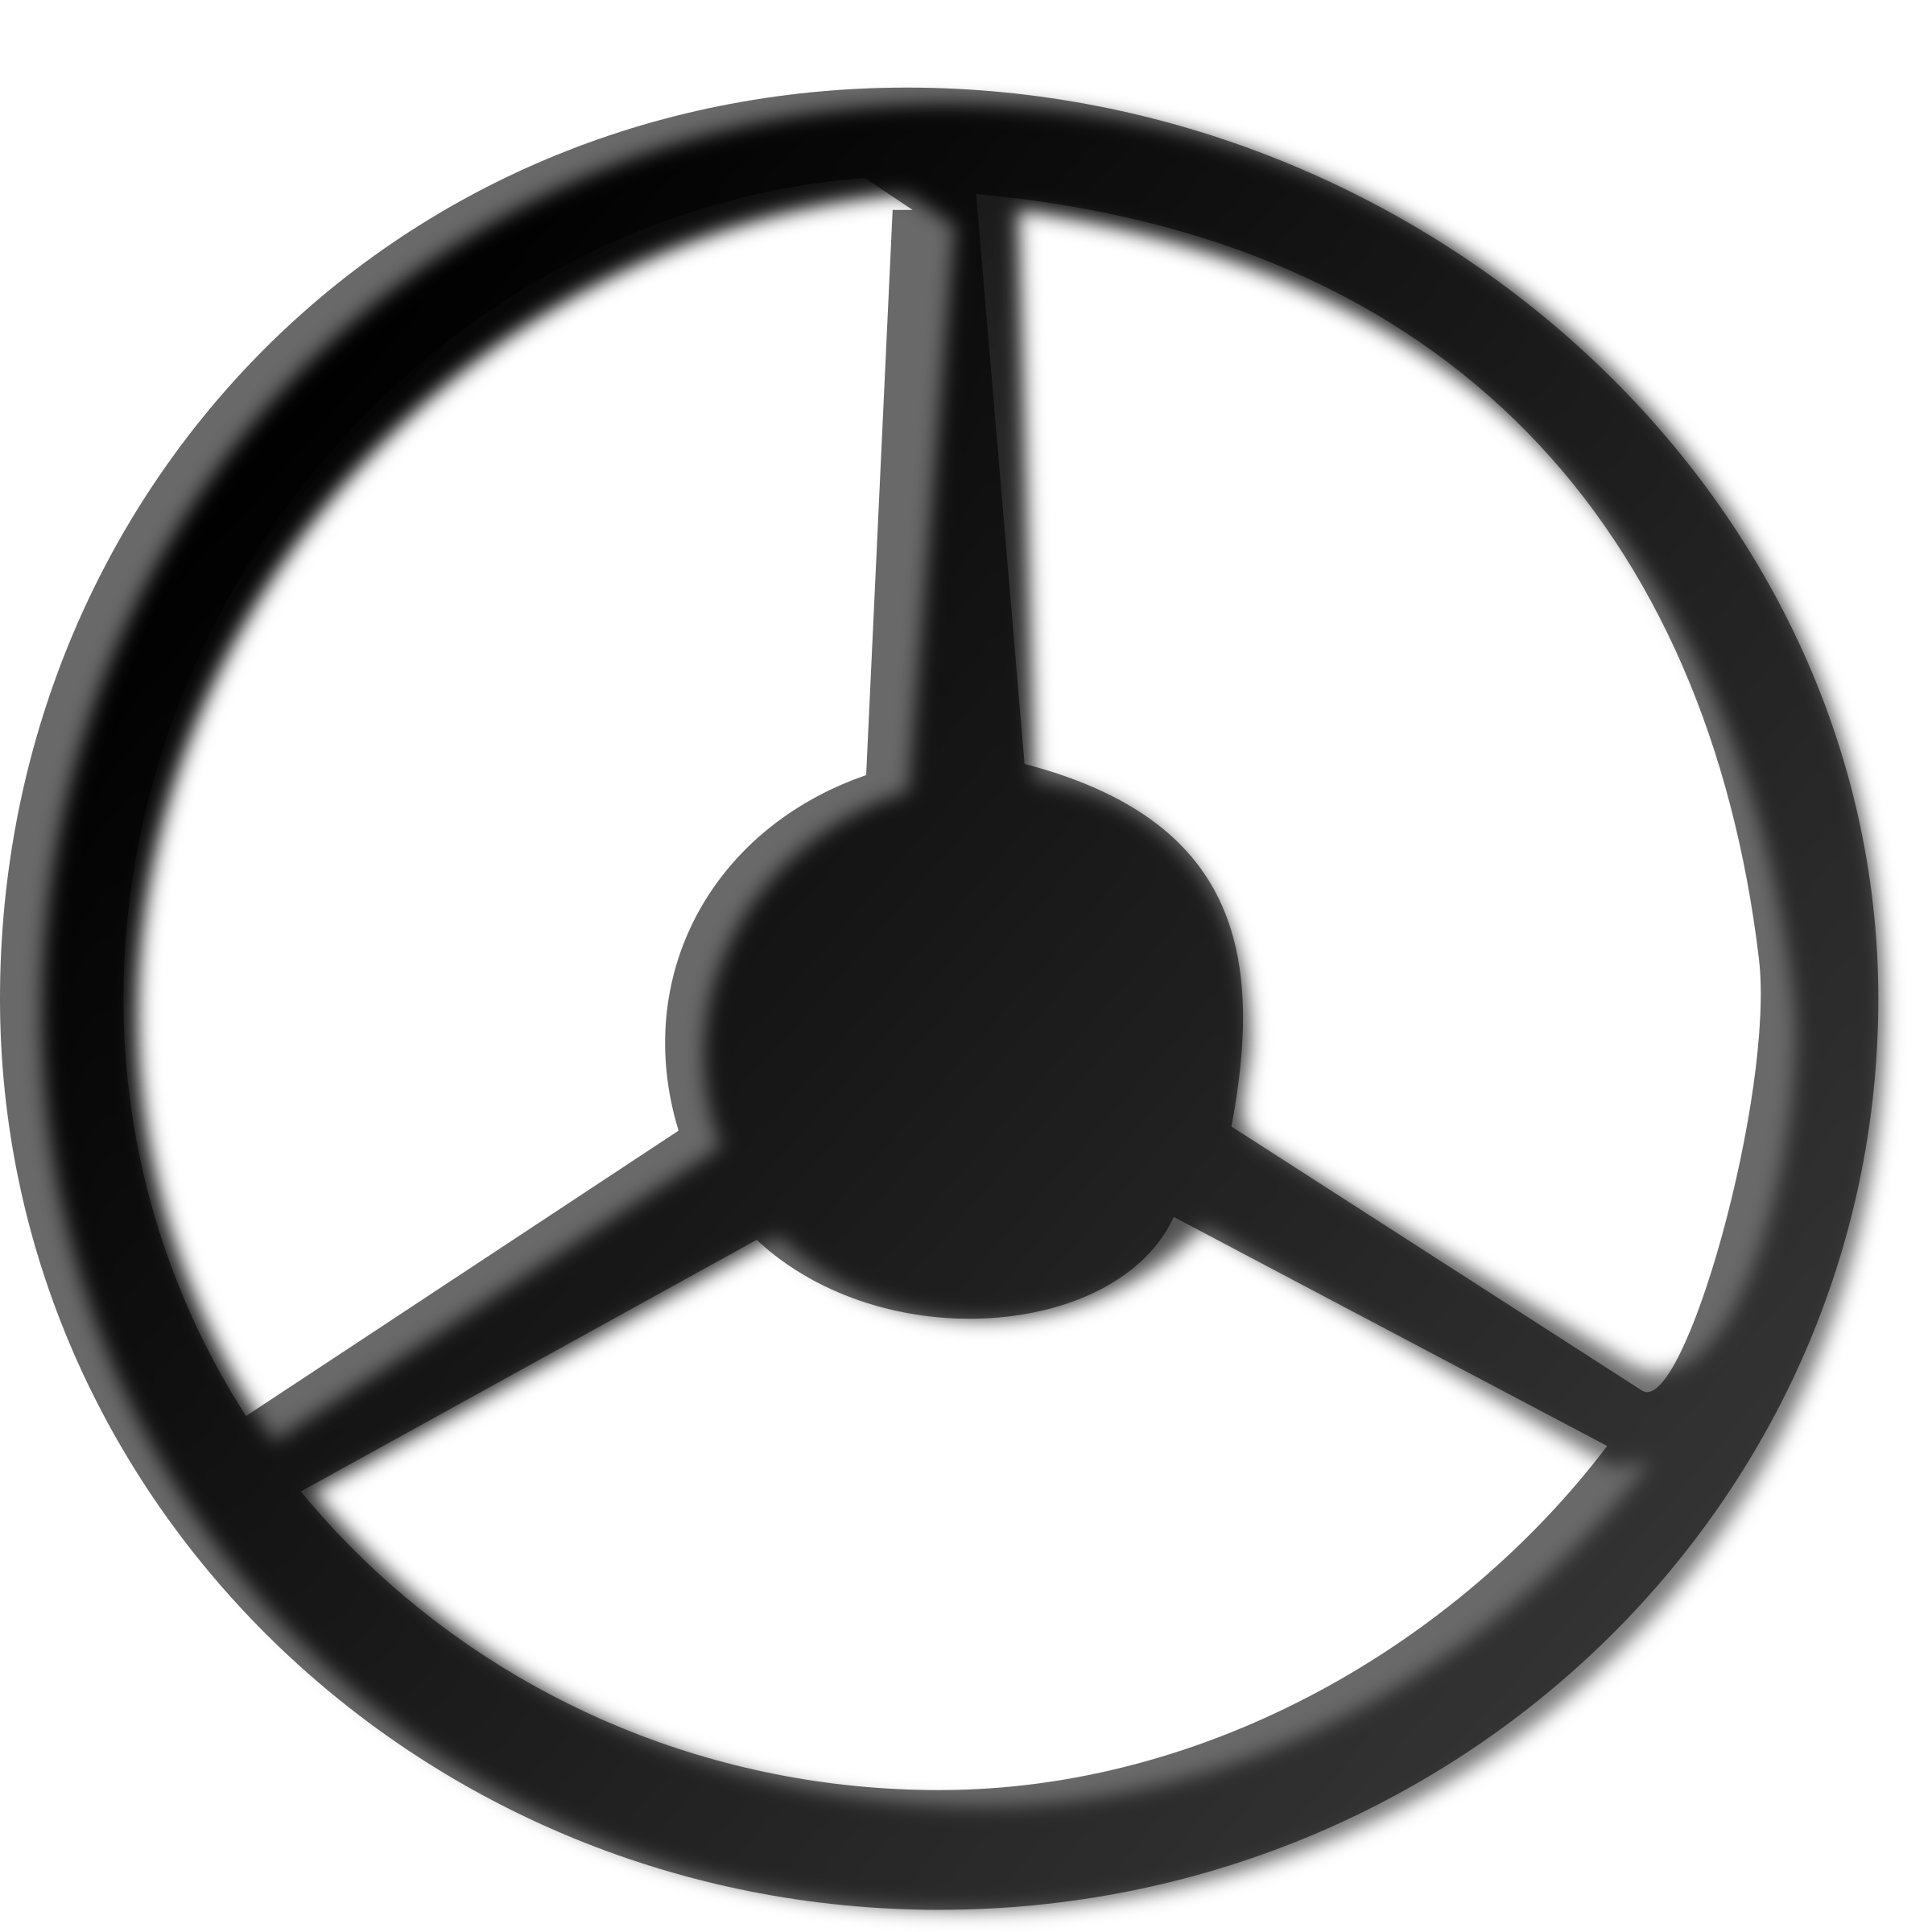 banner royalty free stock Big image png. Steering wheel clipart